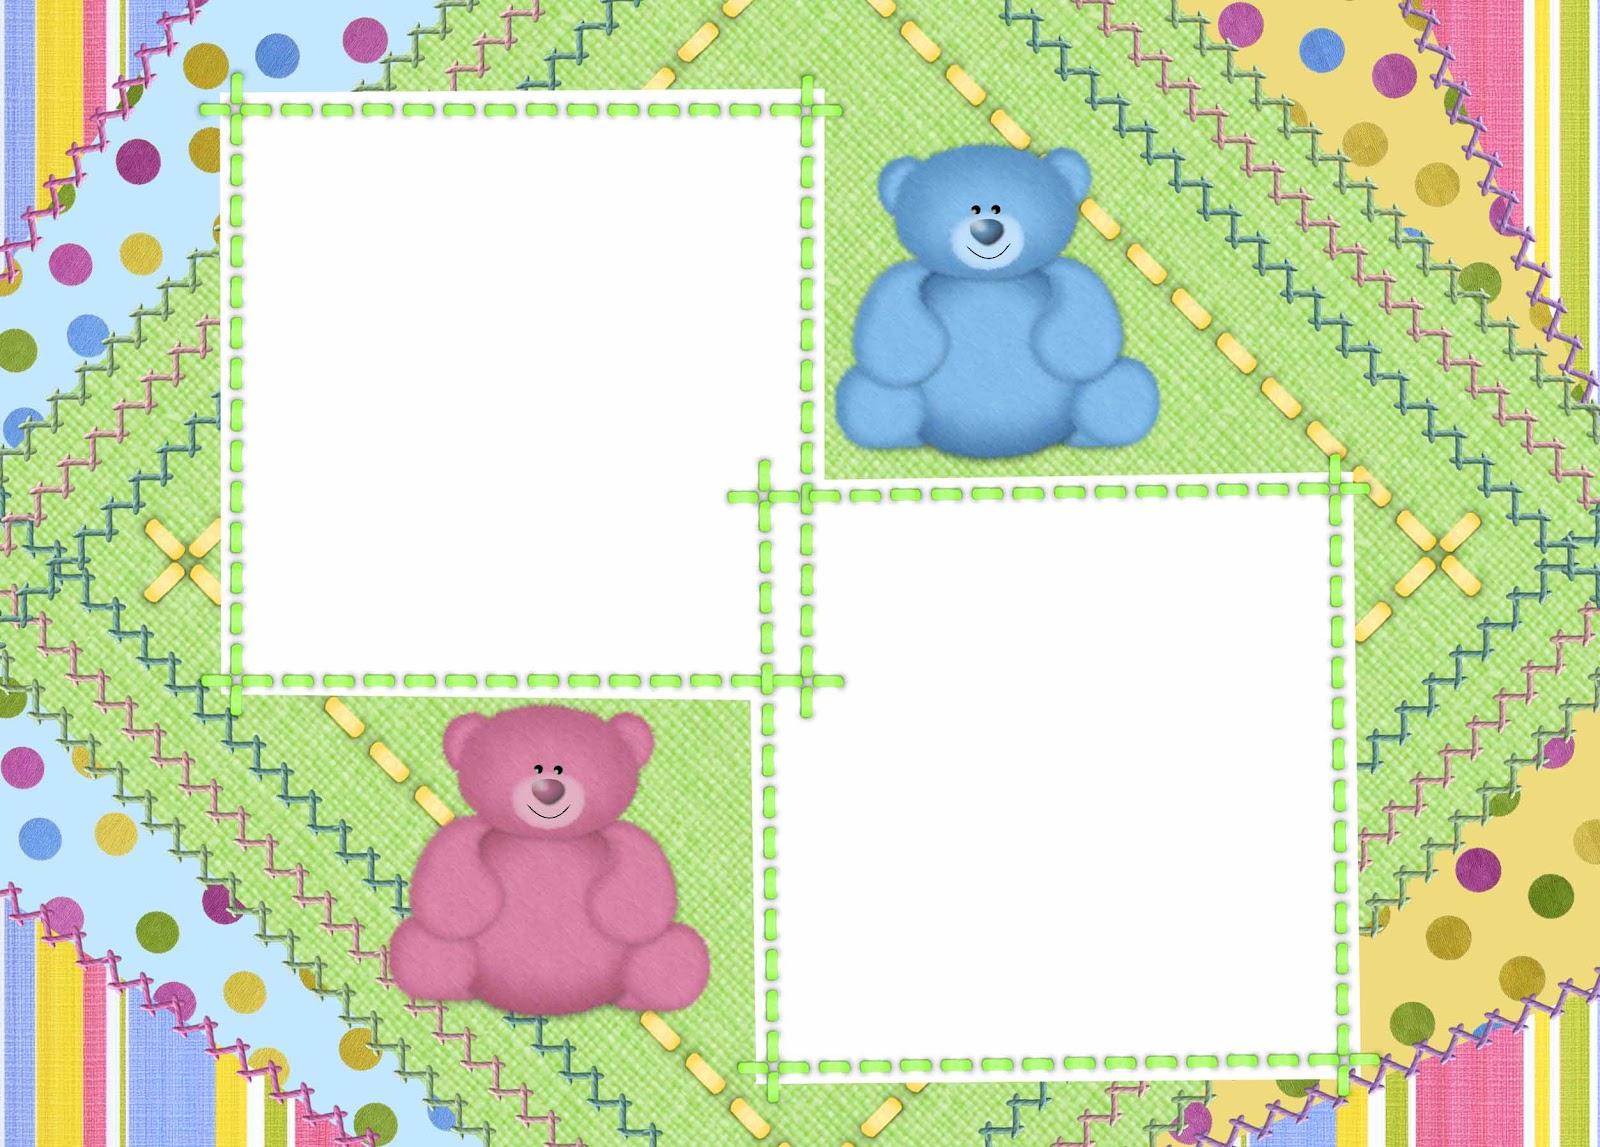 Baby Frames Wallpapers High Quality